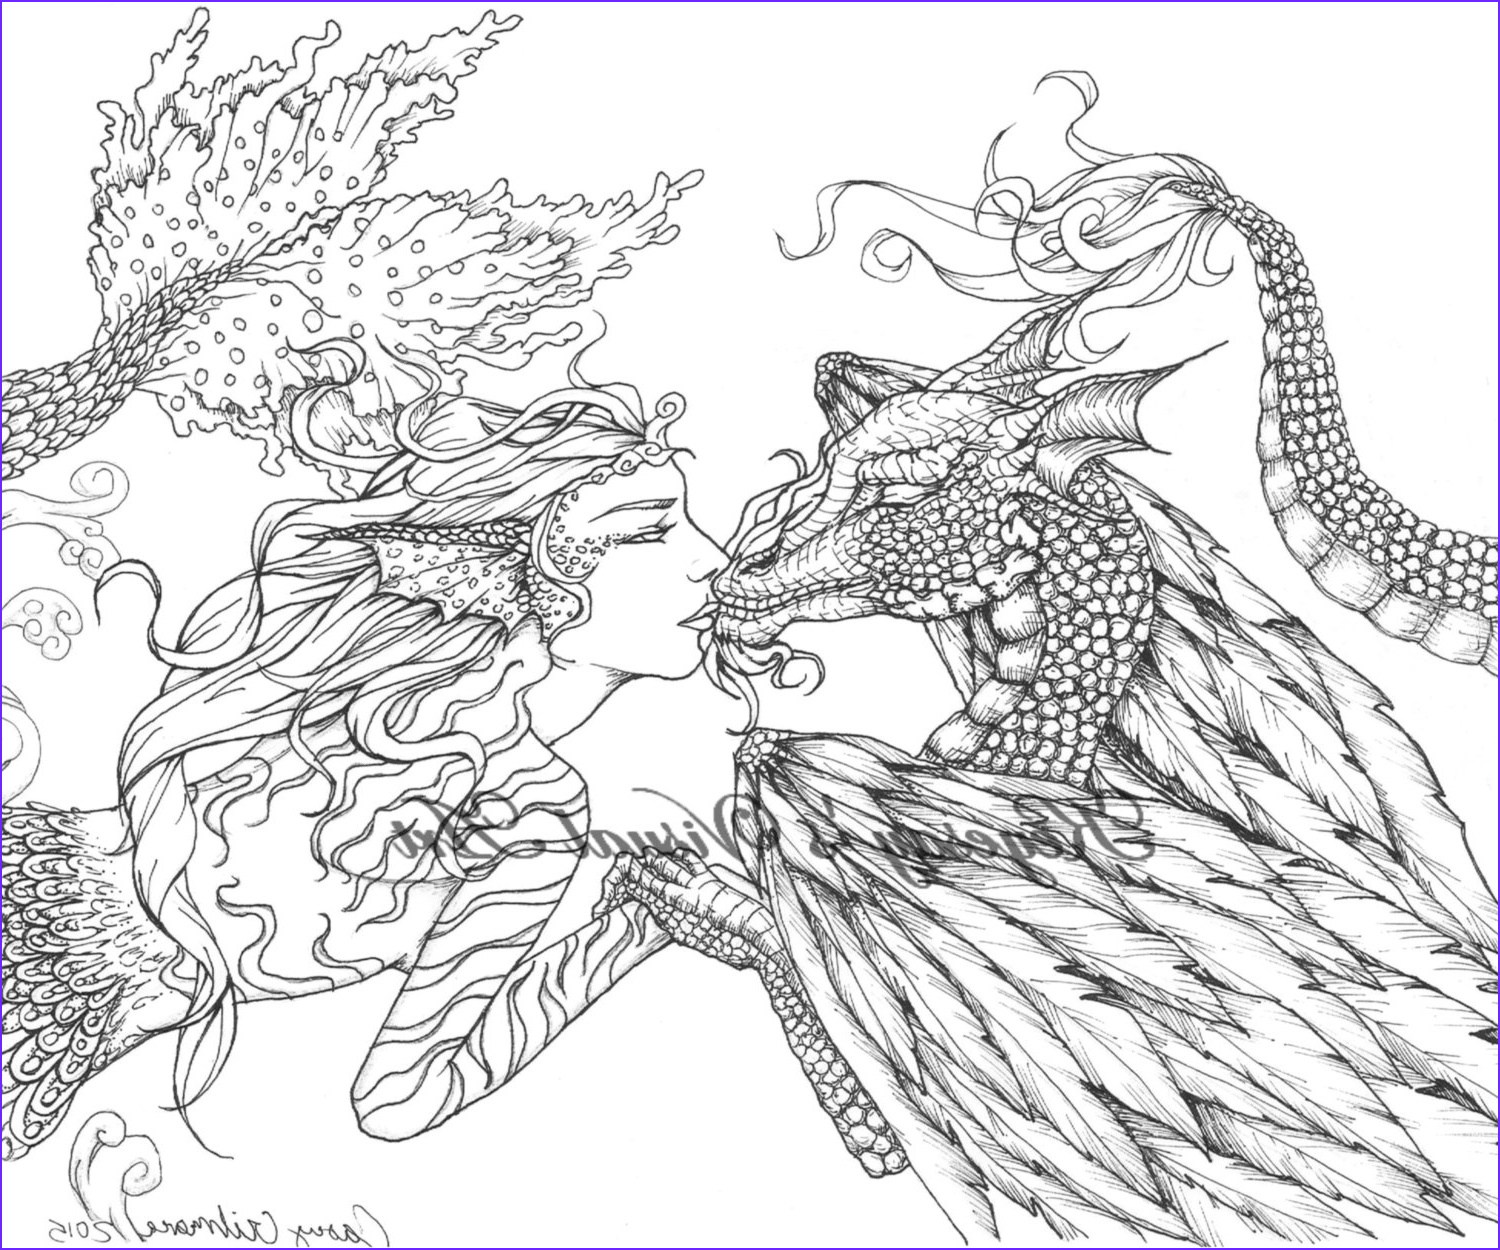 Fantasy Coloring Pages For Adults Inspirational Photography Adult Fantasy Coloring Page Digital Download Digi Print